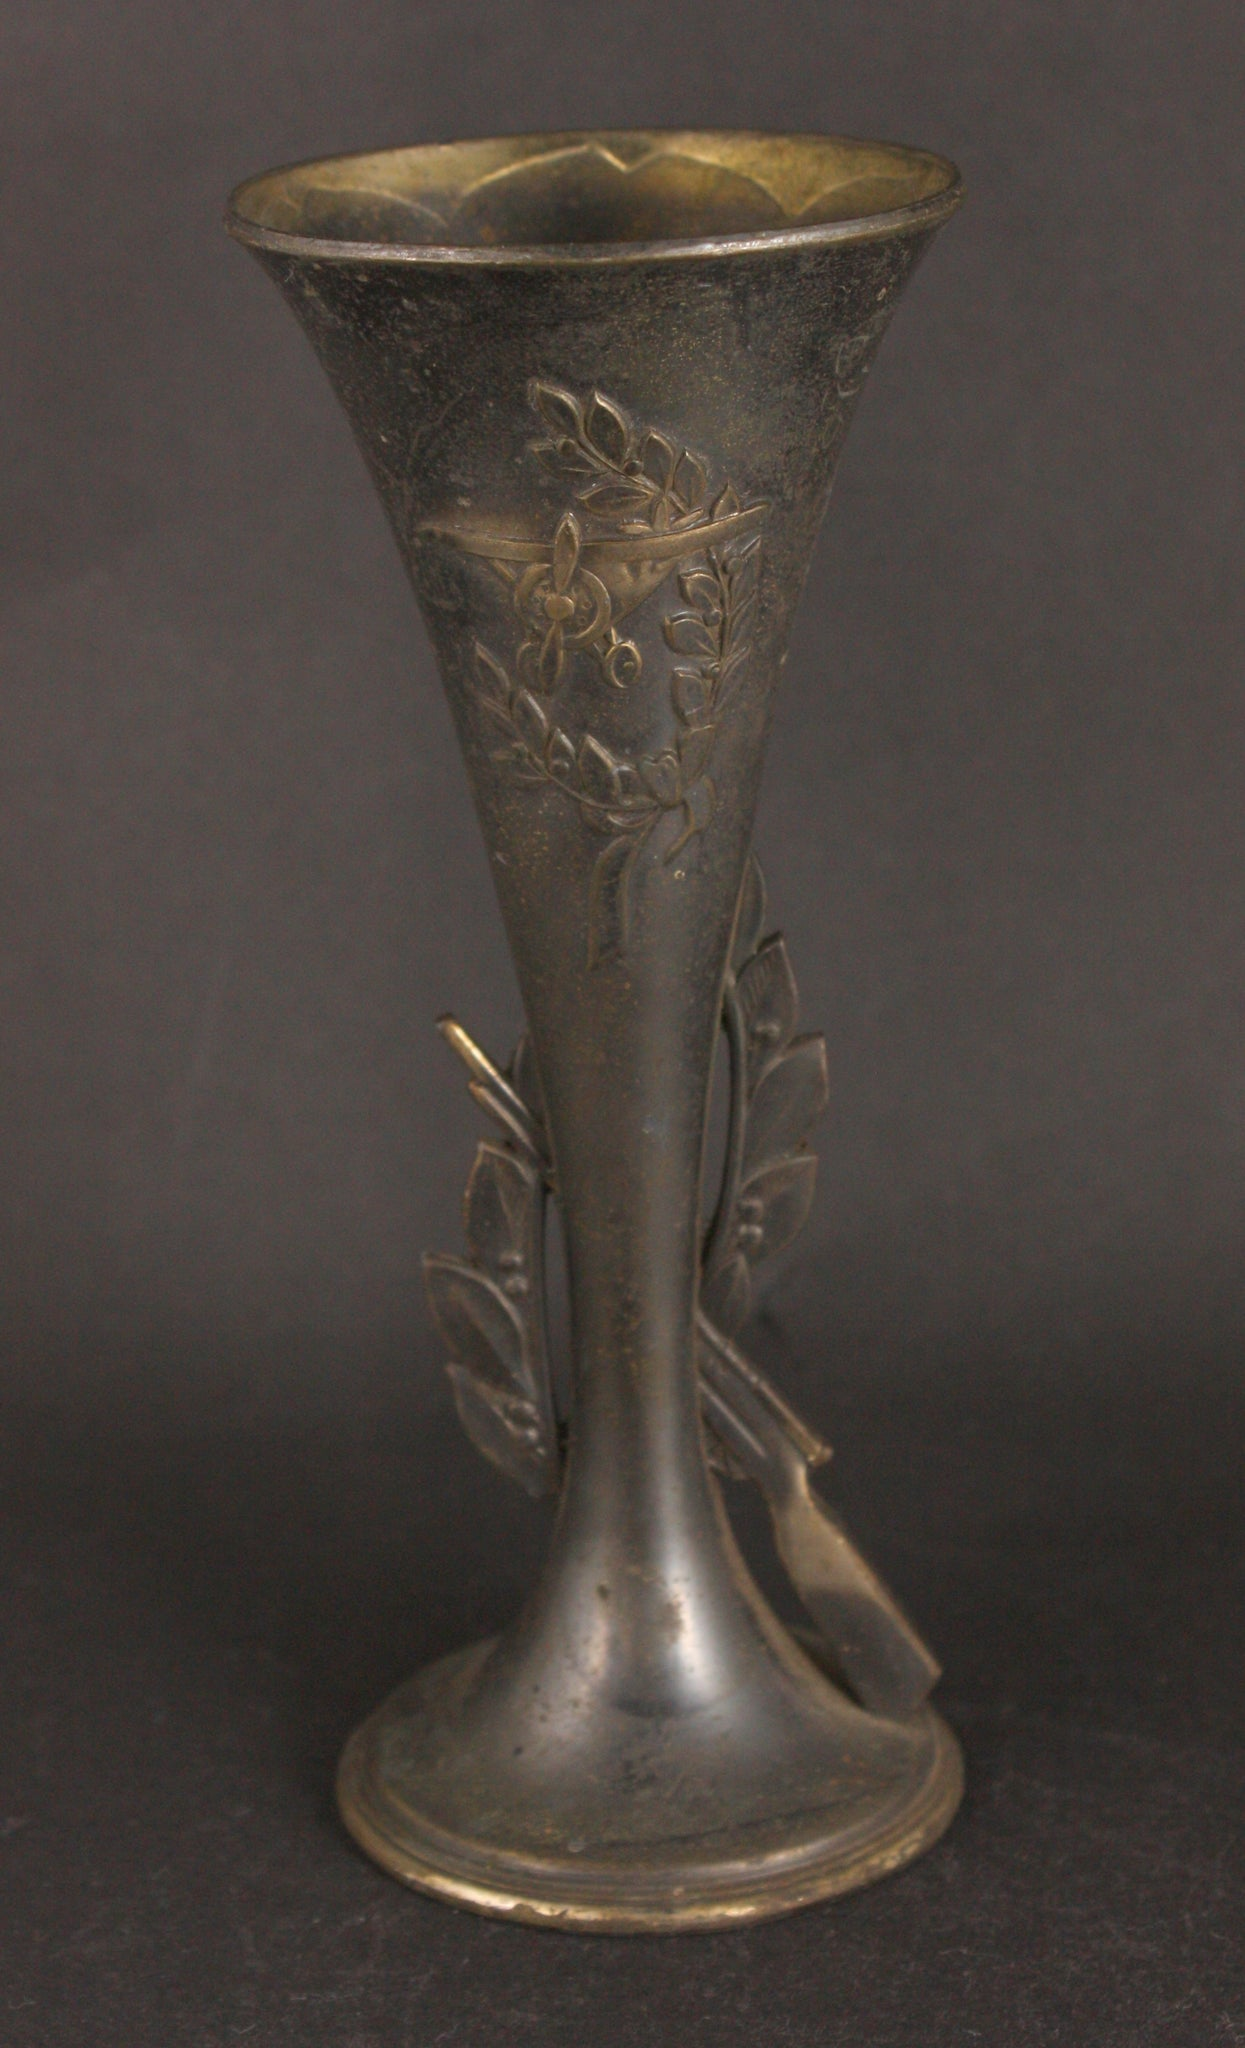 Antique Japanese Military Biplane Rifle Metal Vase